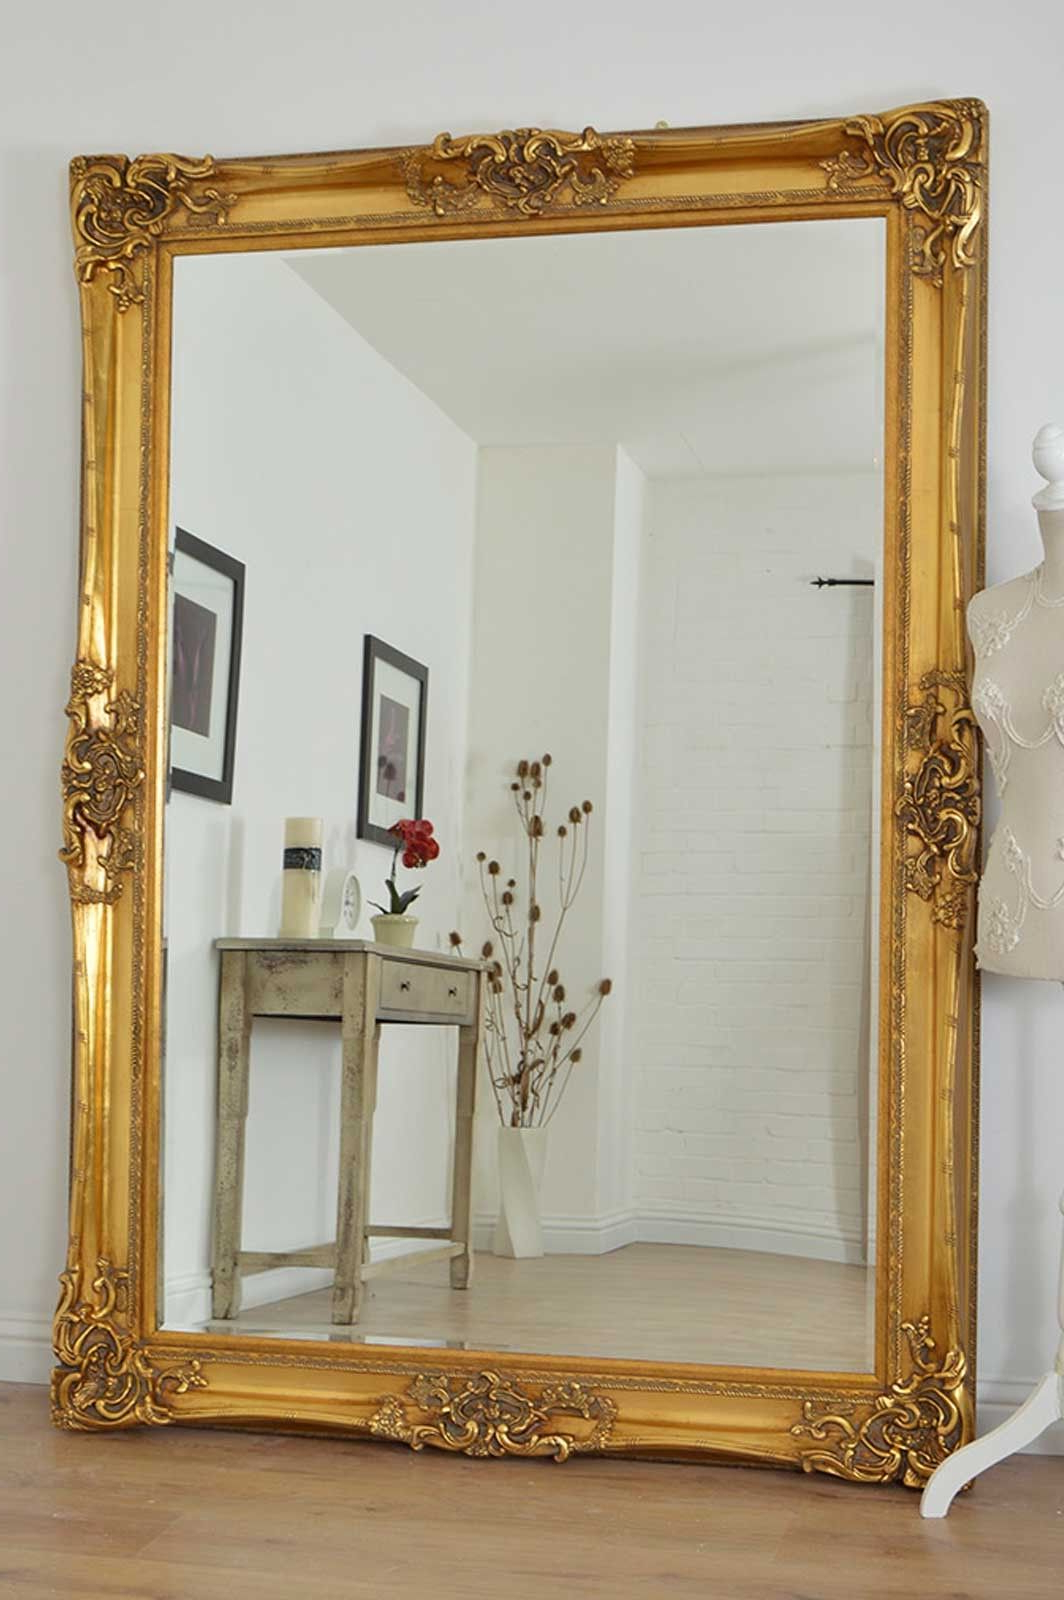 Preferred Wall Mirrors For Hallway In Large Gold Very Ornate Antique Design Wall Mirror 7ft X 5ft (213cm X (View 19 of 20)